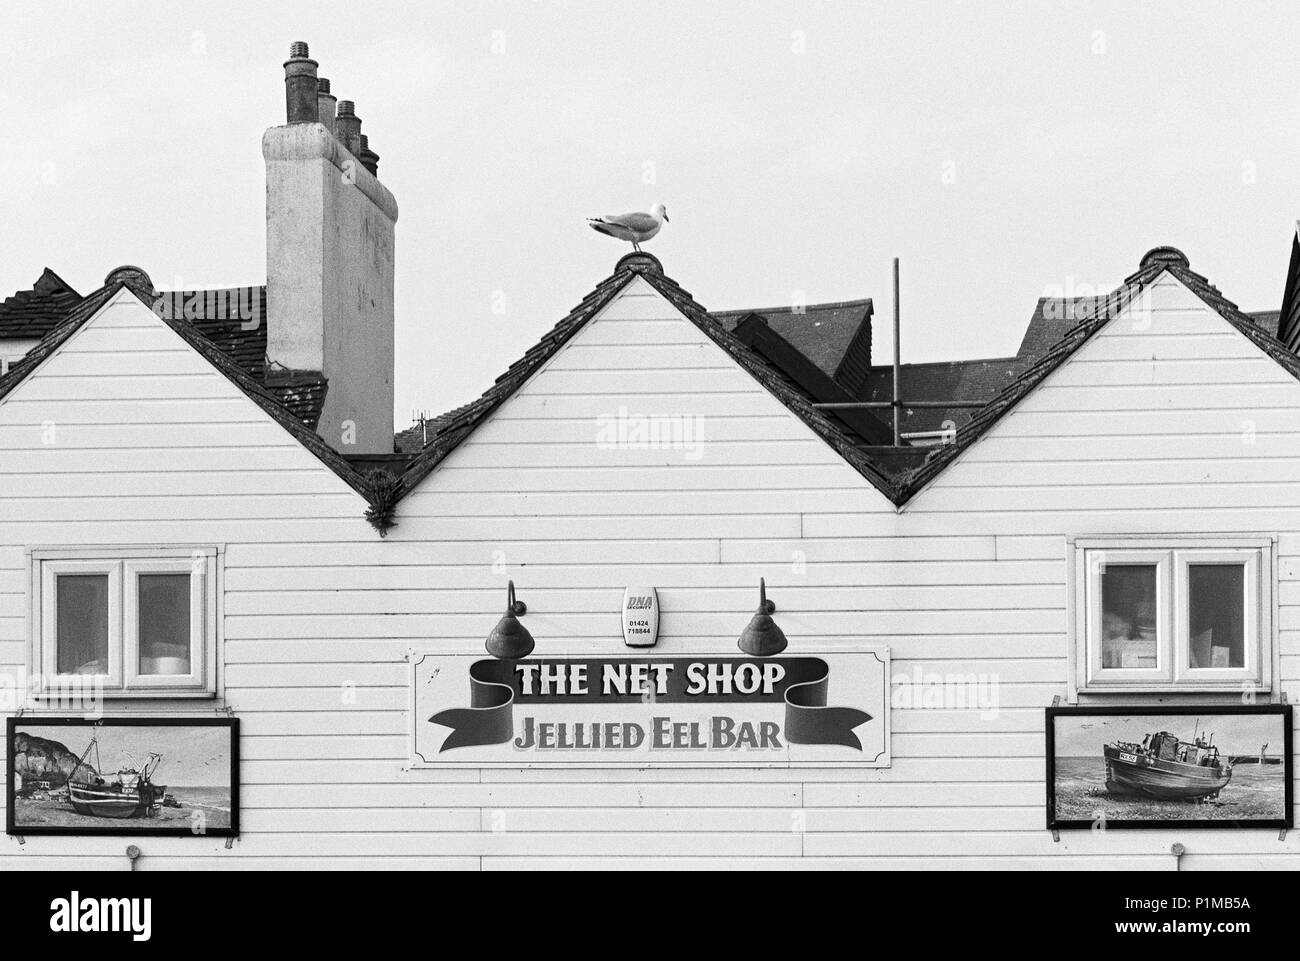 Net Shop Jellied Eel Bar on the Stade at Hastings Old Town, East Sussex UK - Stock Image